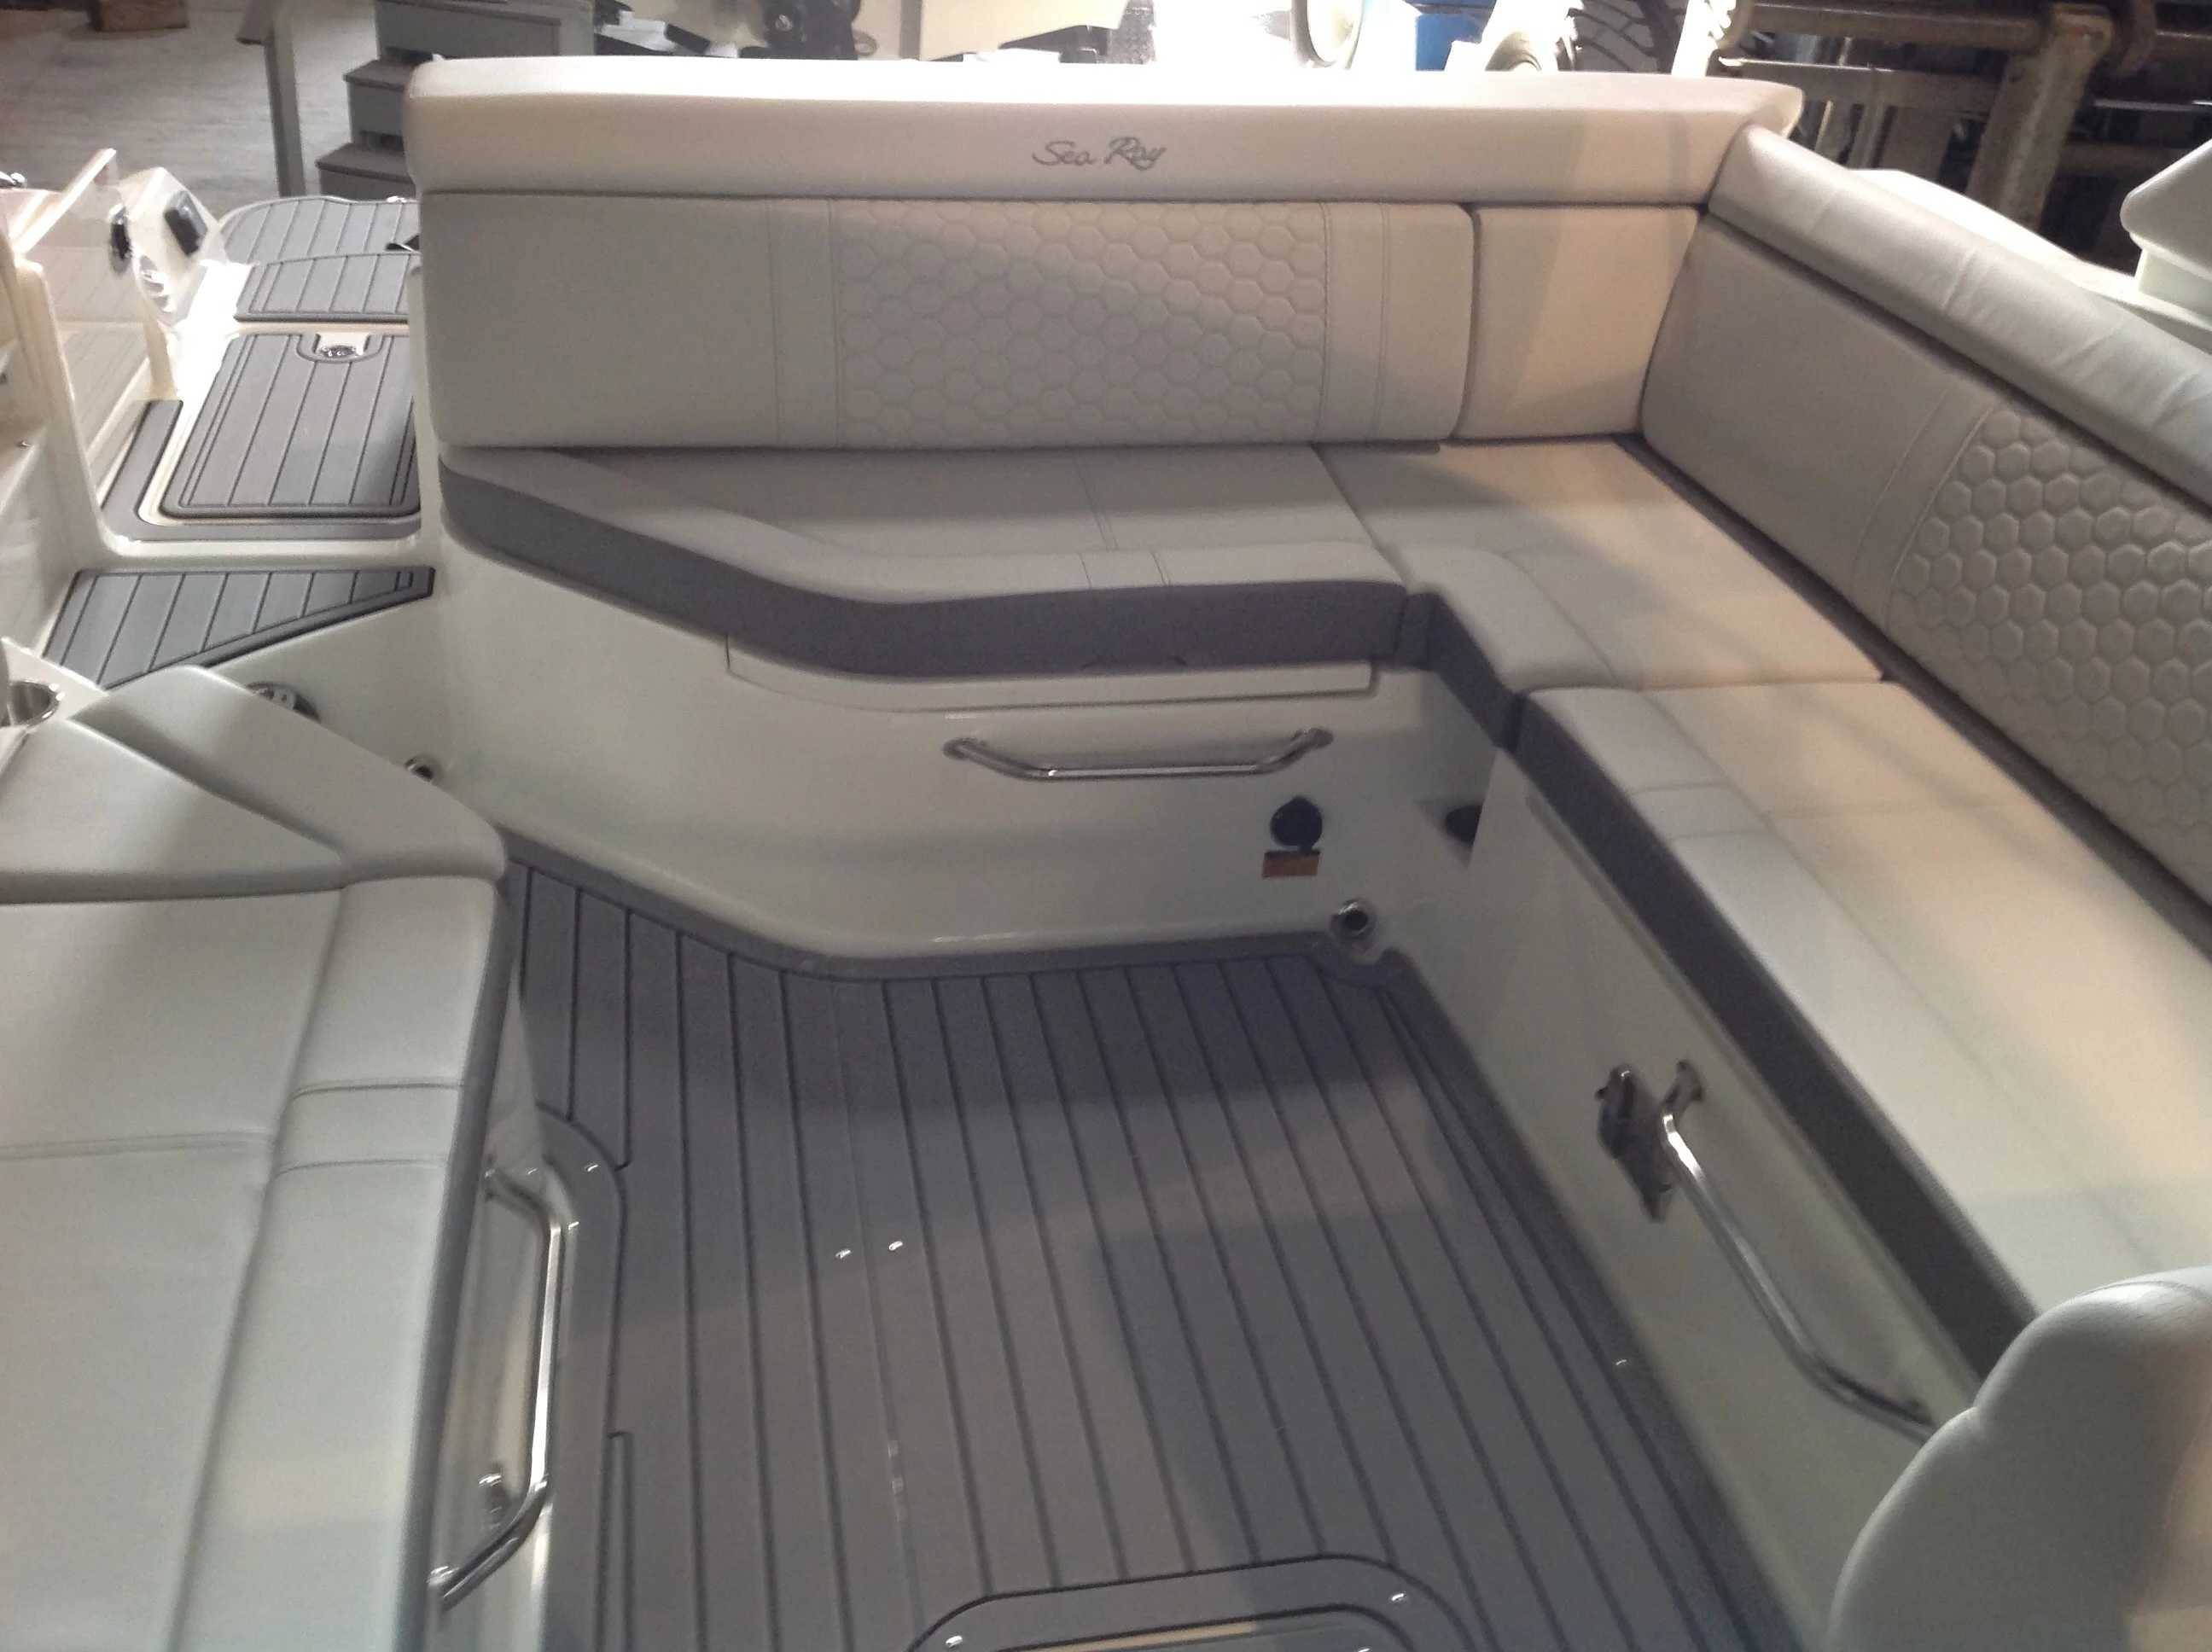 2021 Sea Ray boat for sale, model of the boat is 270 SDX & Image # 15 of 21